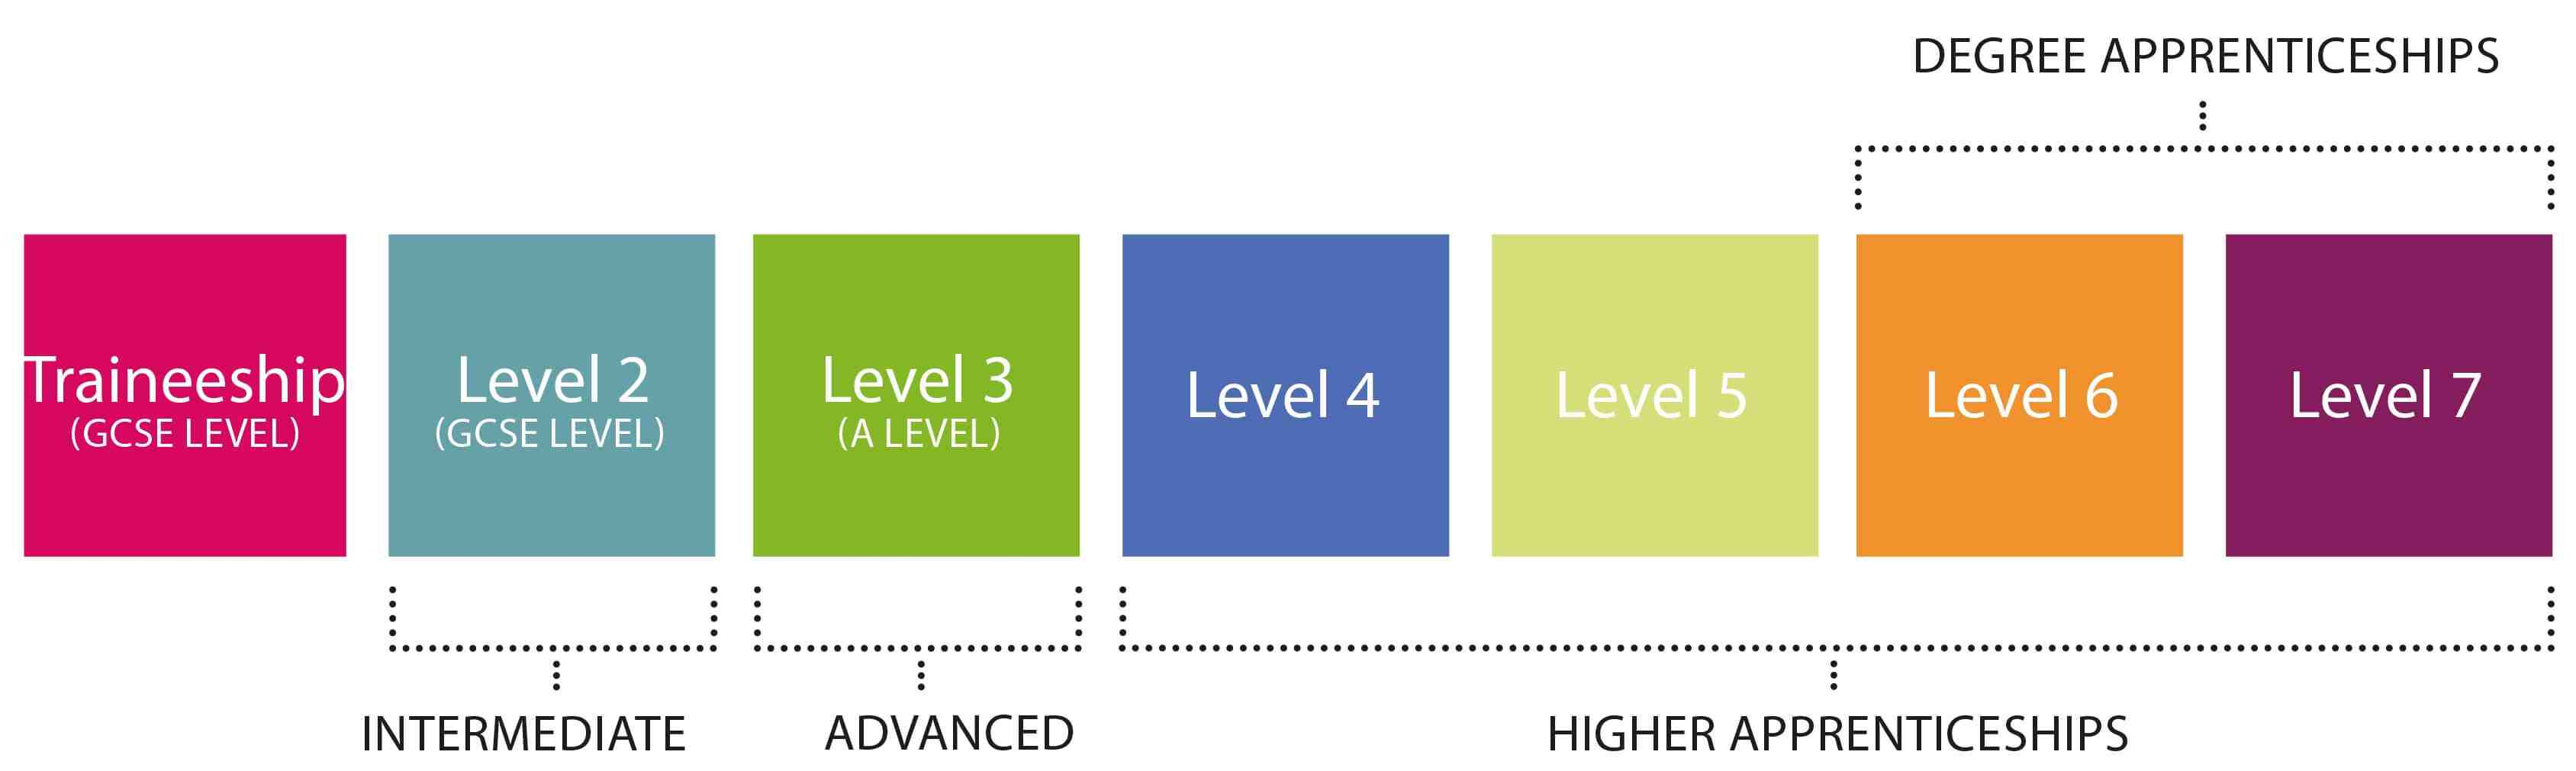 Different levels of degree apprenticeships